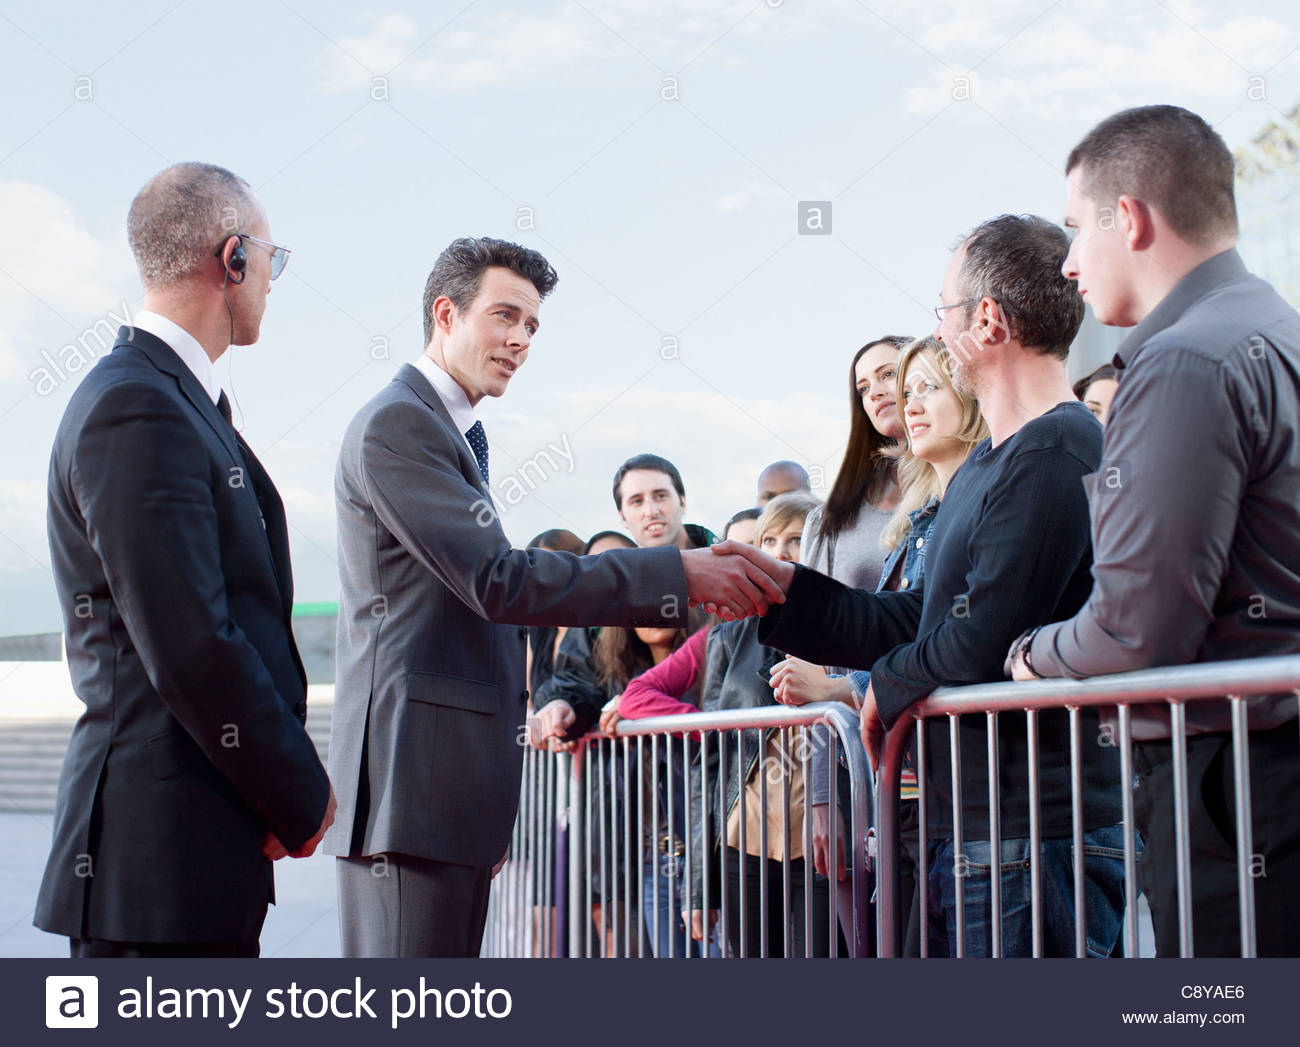 Fans taking pictures with cell phone behind barrier stock photo - Politician Shaking Hands With People Behind Barrier Stock Image